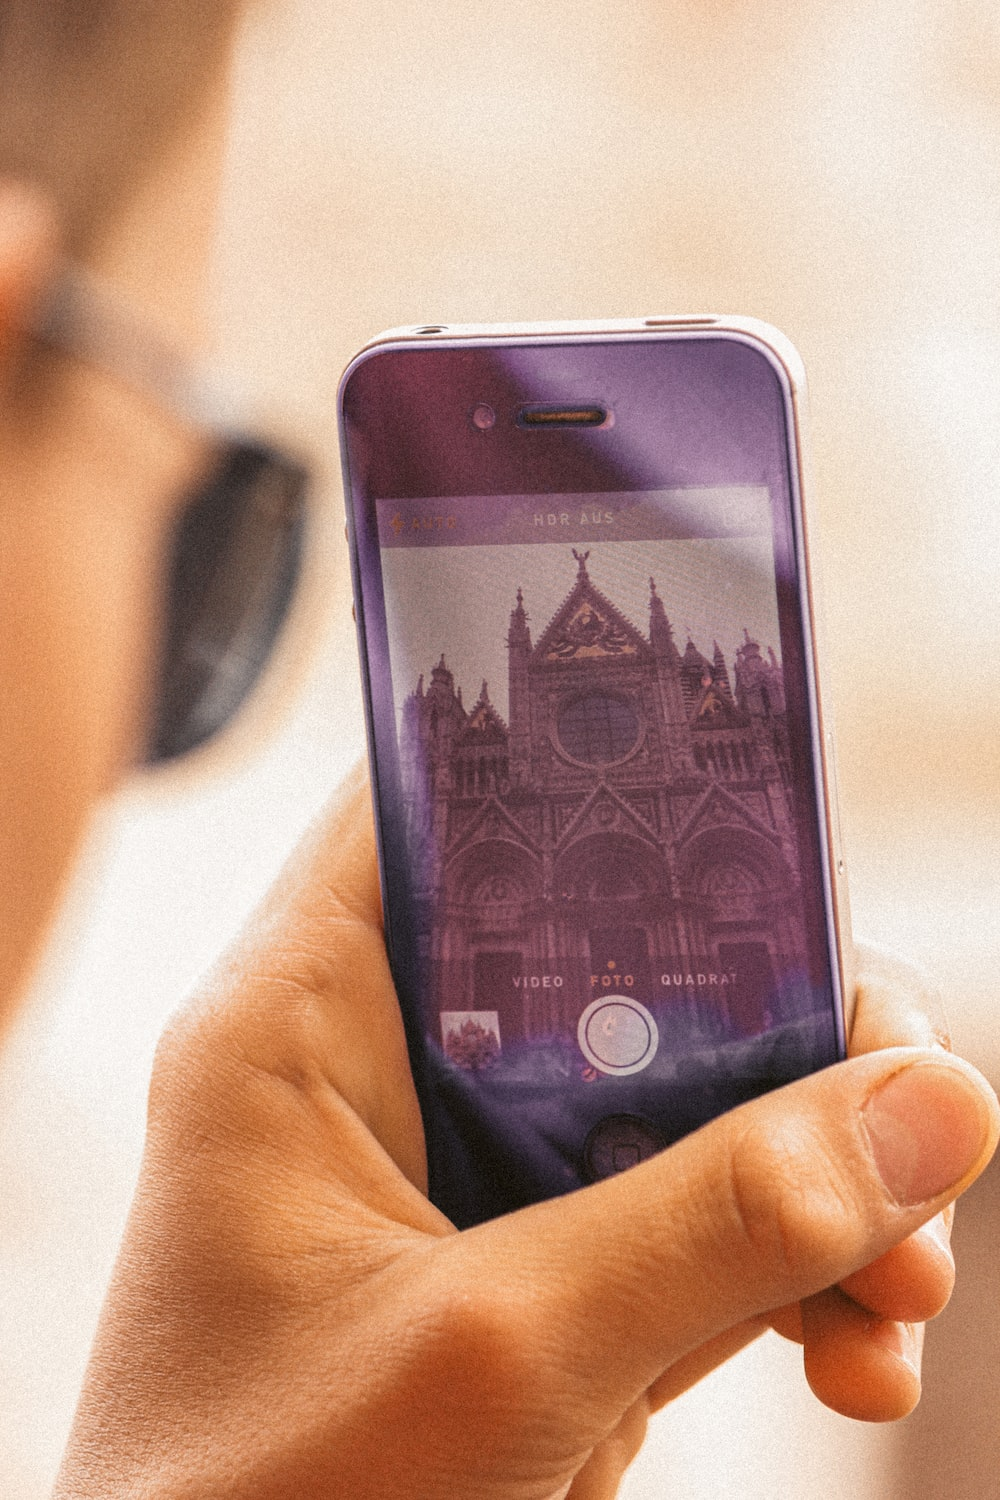 person holding iphone 6 with purple case